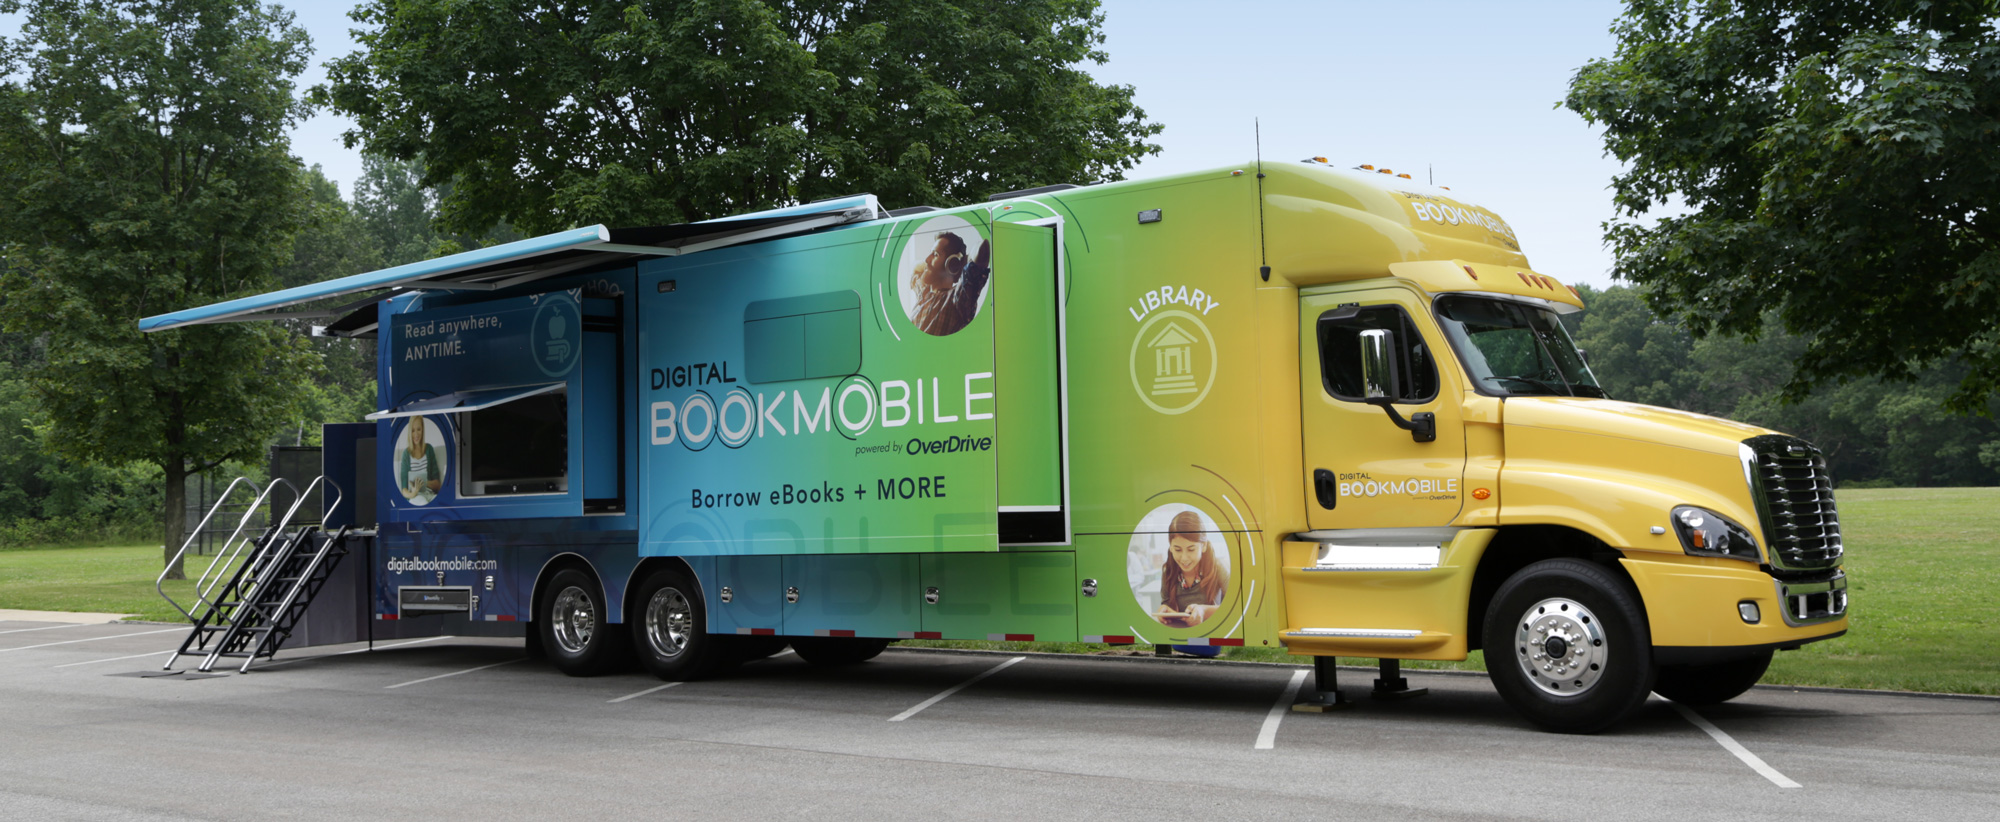 Our Route – Overdrive's Digital Bookmobile